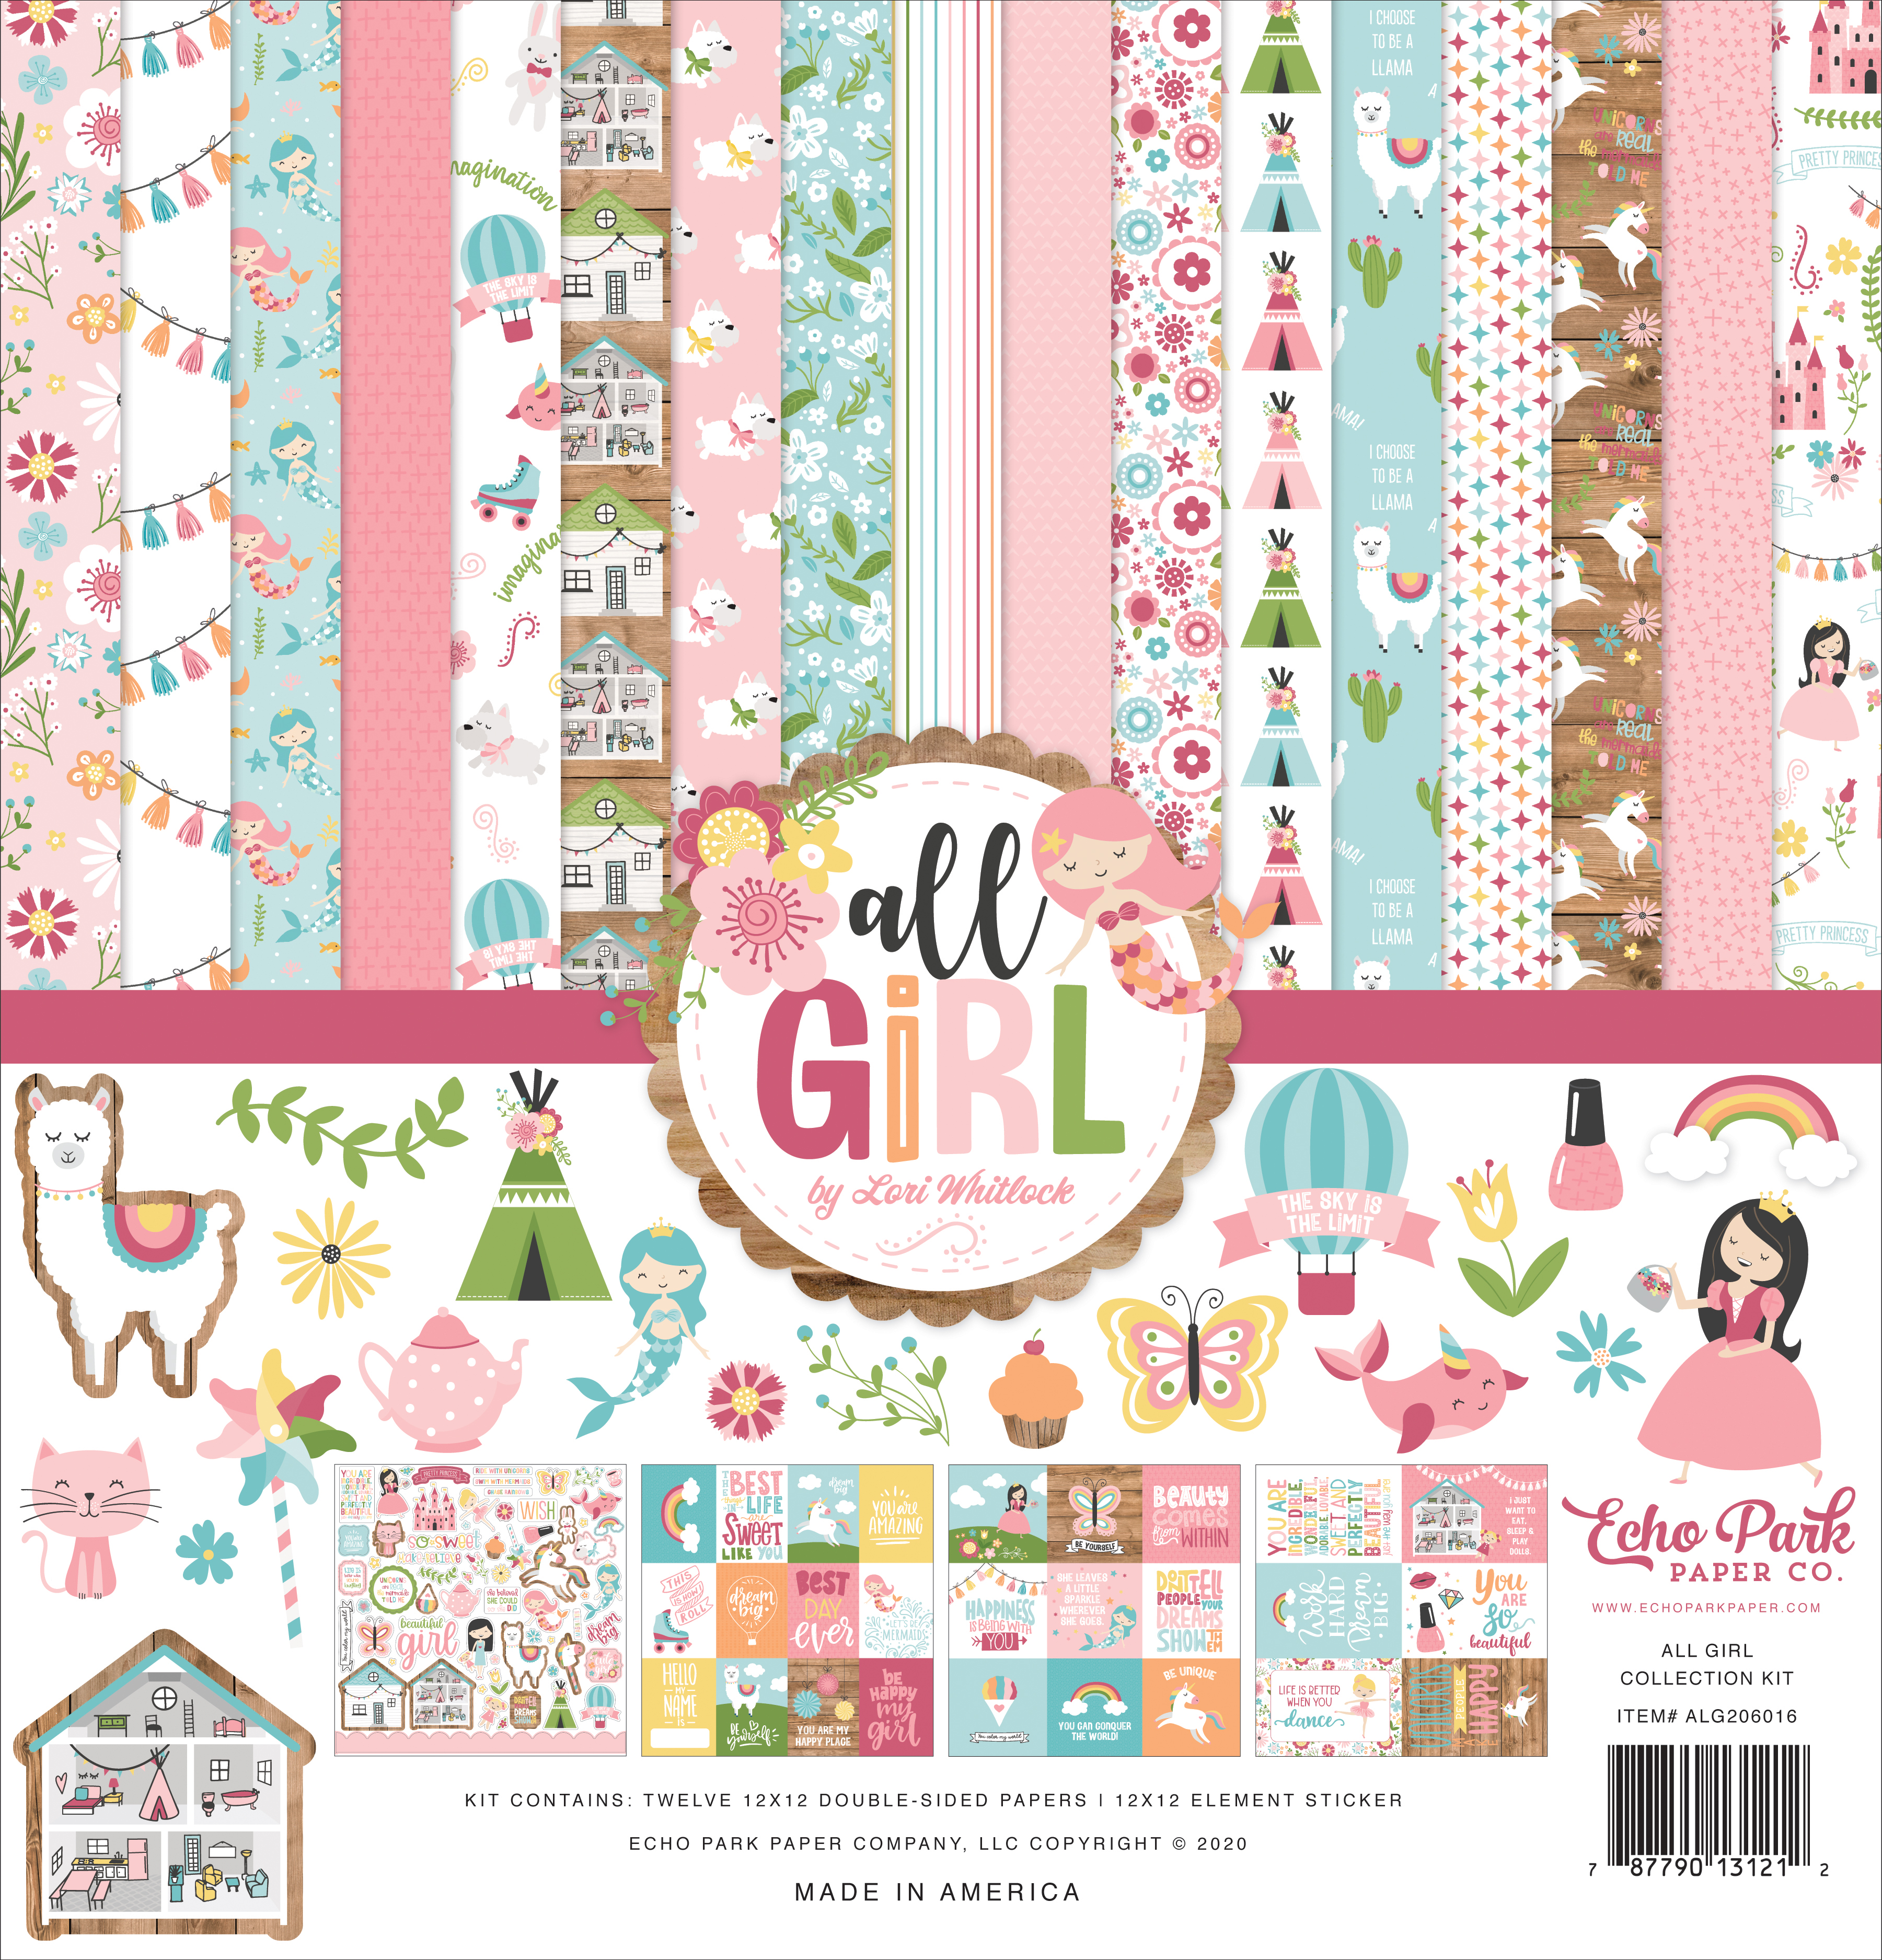 All Girl Collection Kit